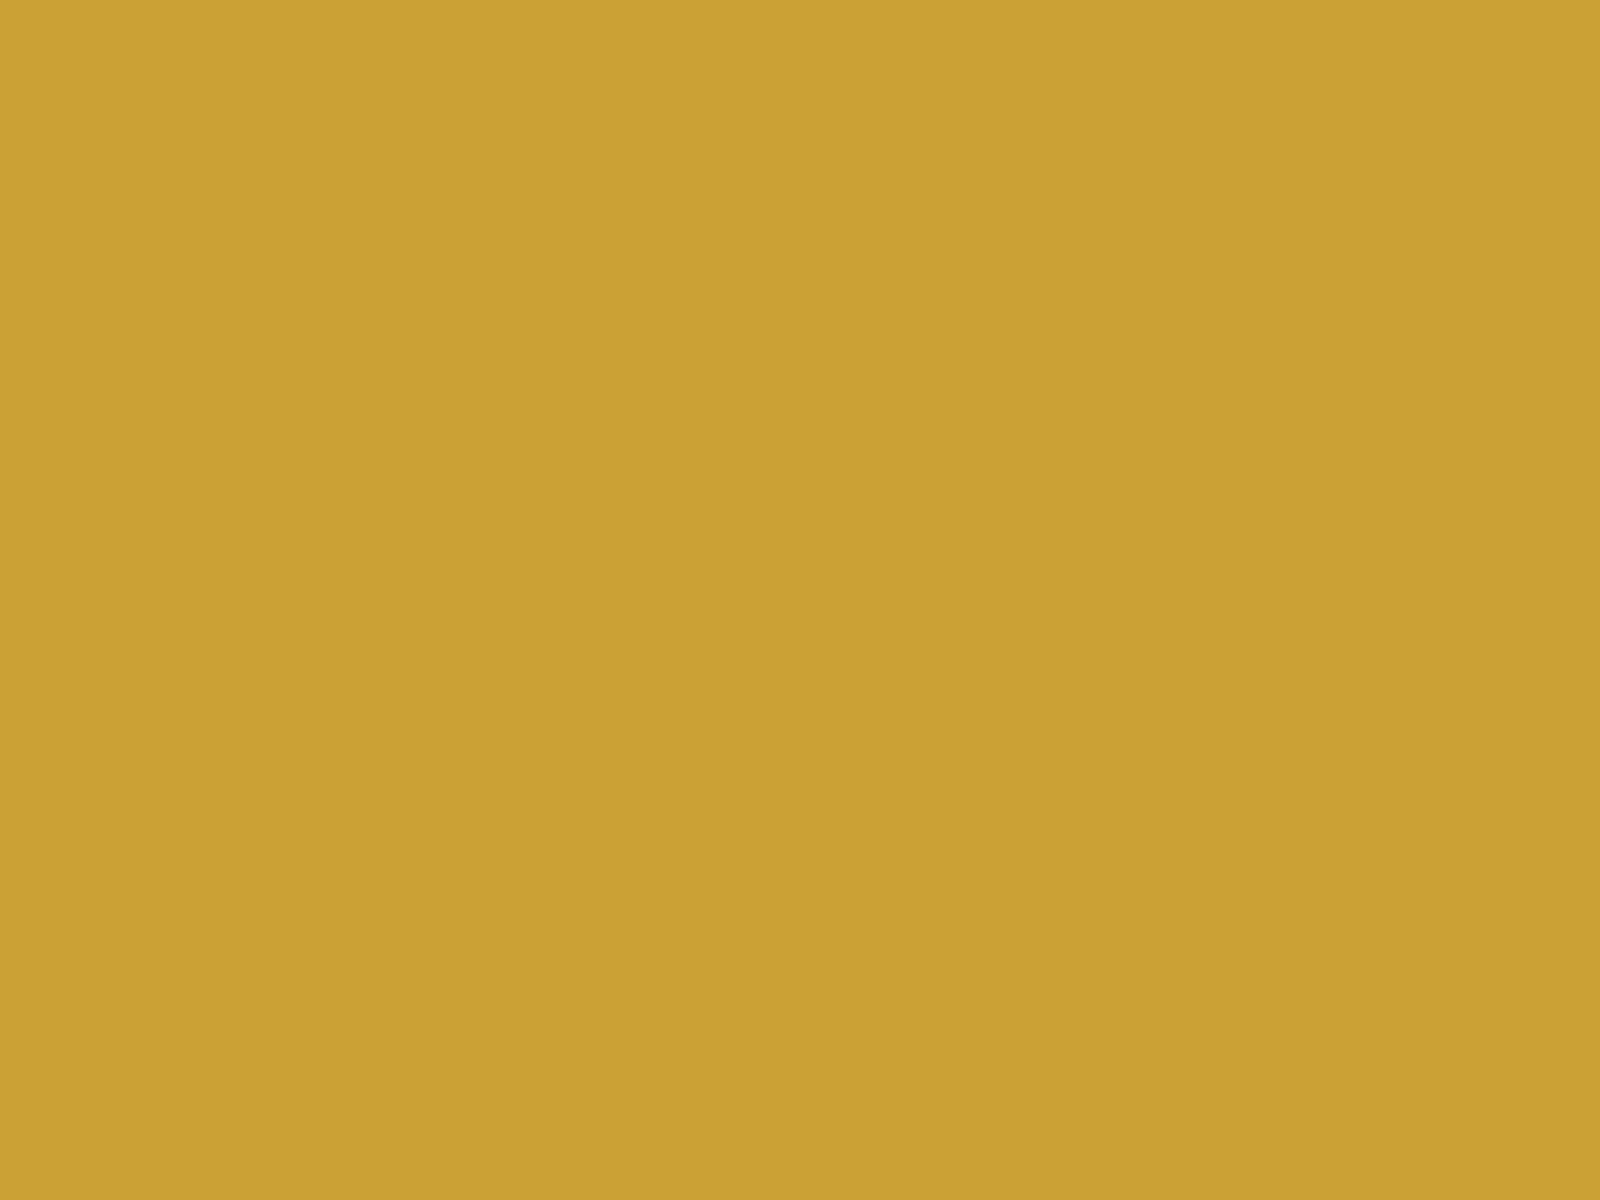 Gold solid color background view and download the below background 1600x1200